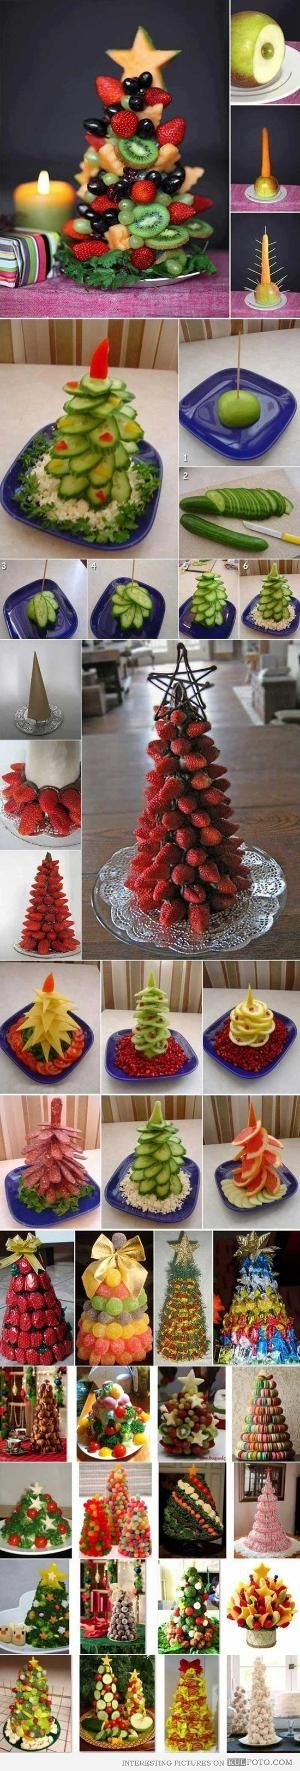 Fruit Christmas trees - Funny how-to guide with pictures for creating beautiful and cute Christmas trees from fruit and vegetables. * by Rebeca'